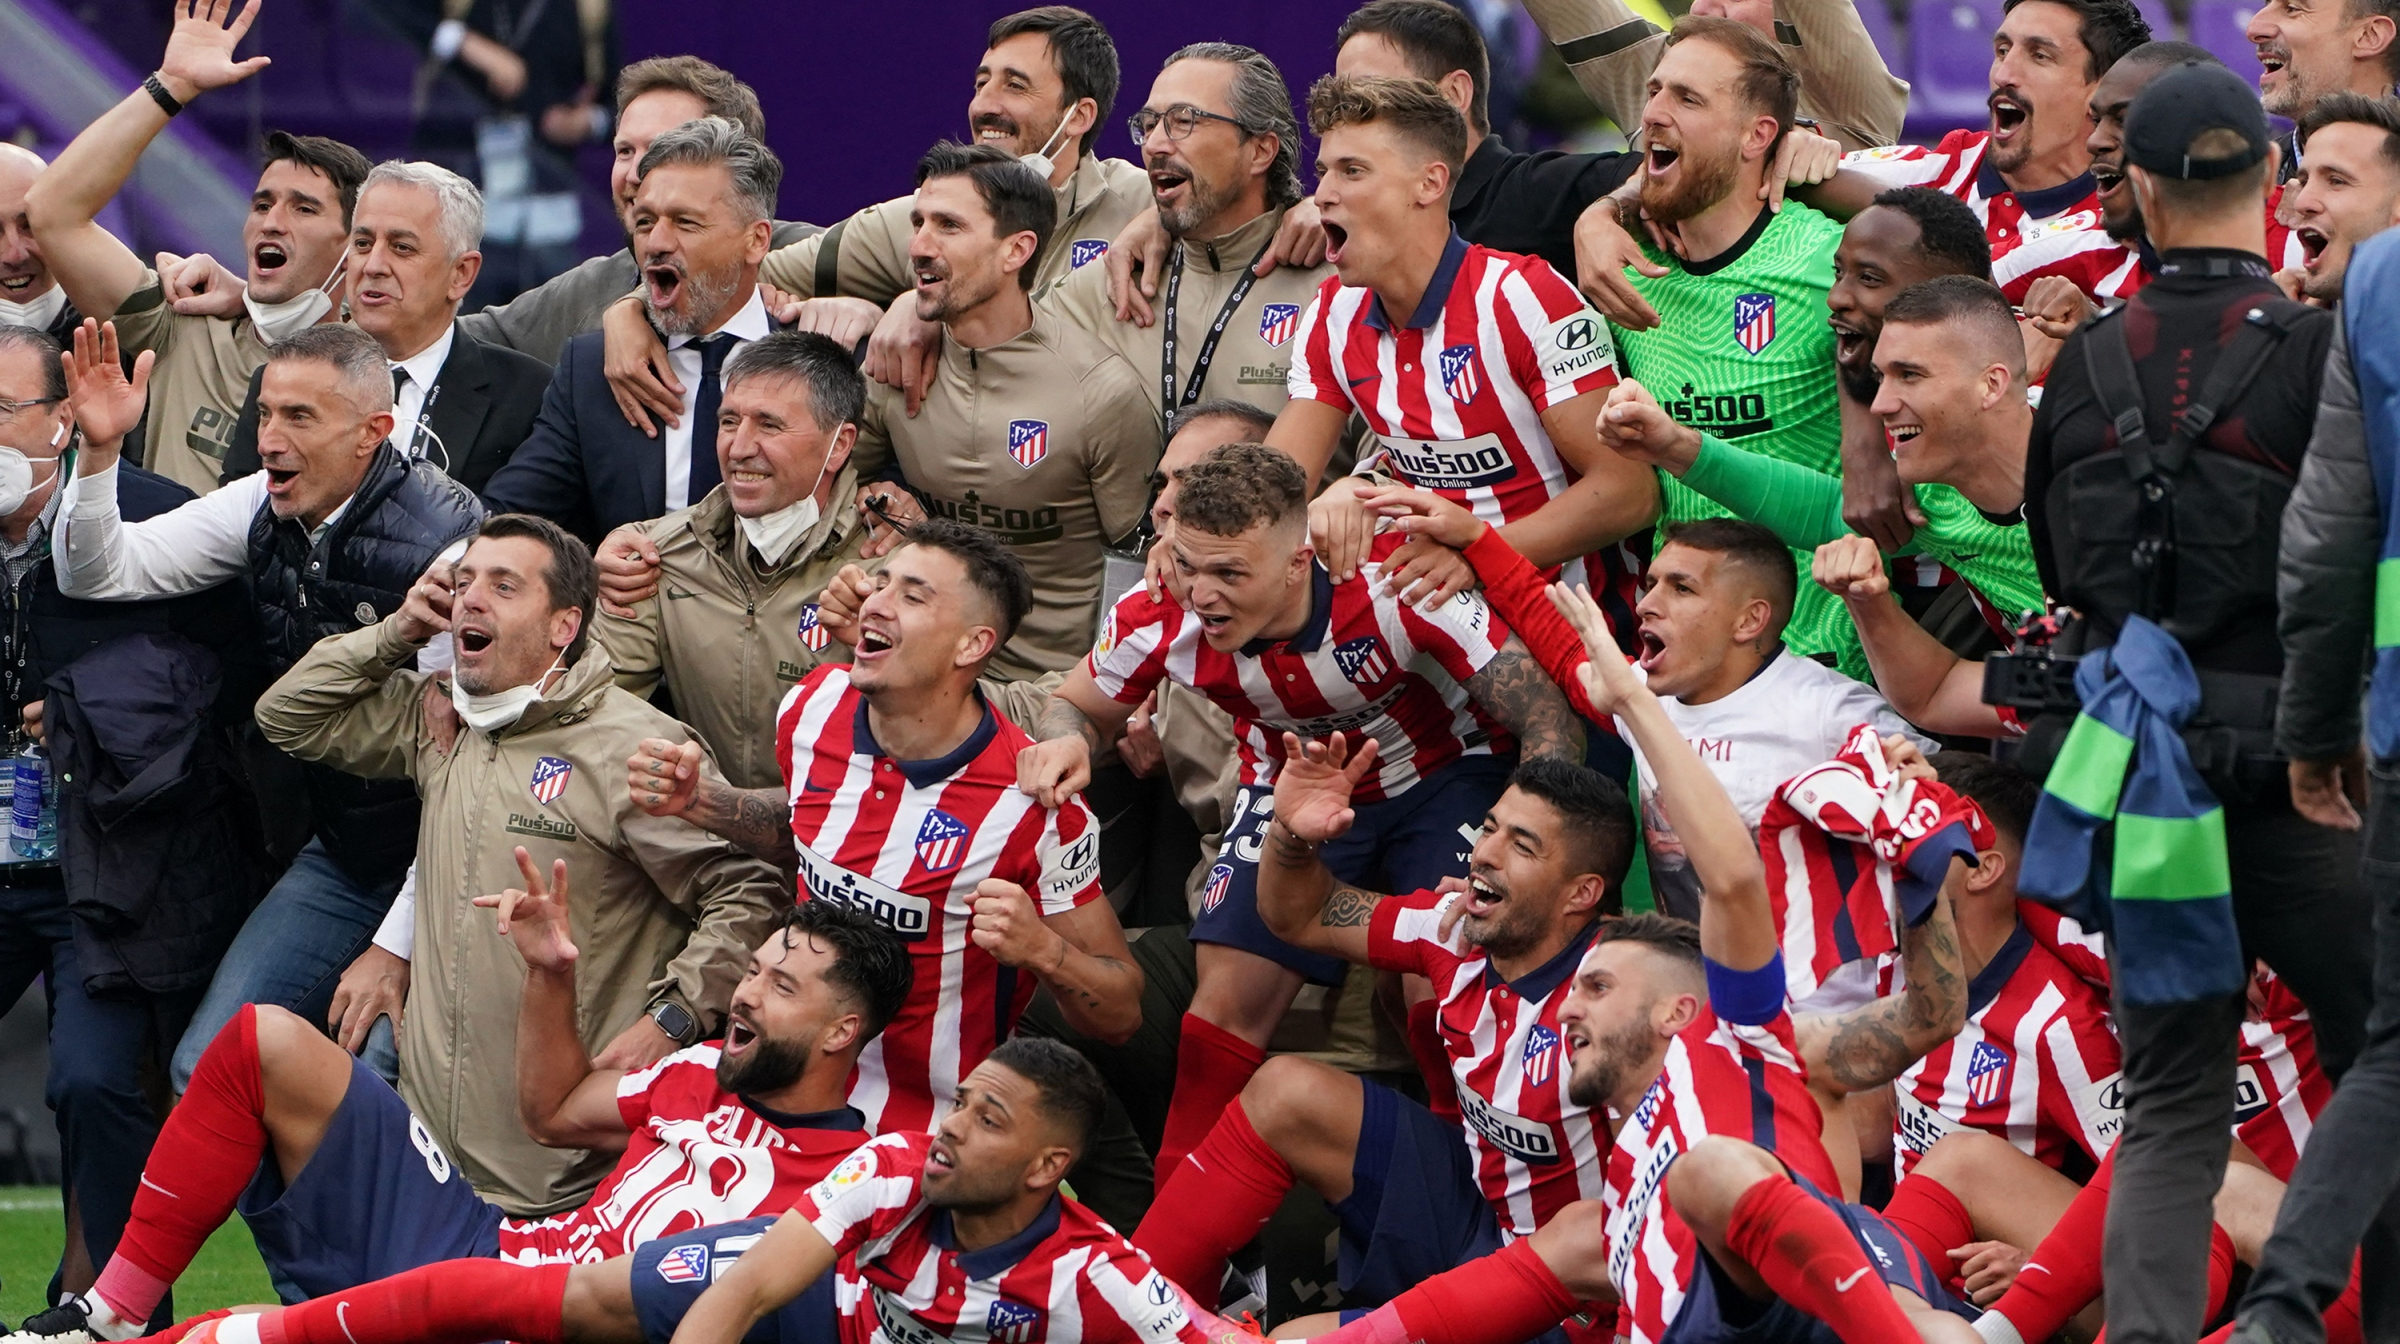 Atletico Madrid's players celebrate after winning the Spanish league football match against Real Valladolid FC and the Liga Championship title at the Jose Zorilla stadium in Valladolid on May 22, 2021.